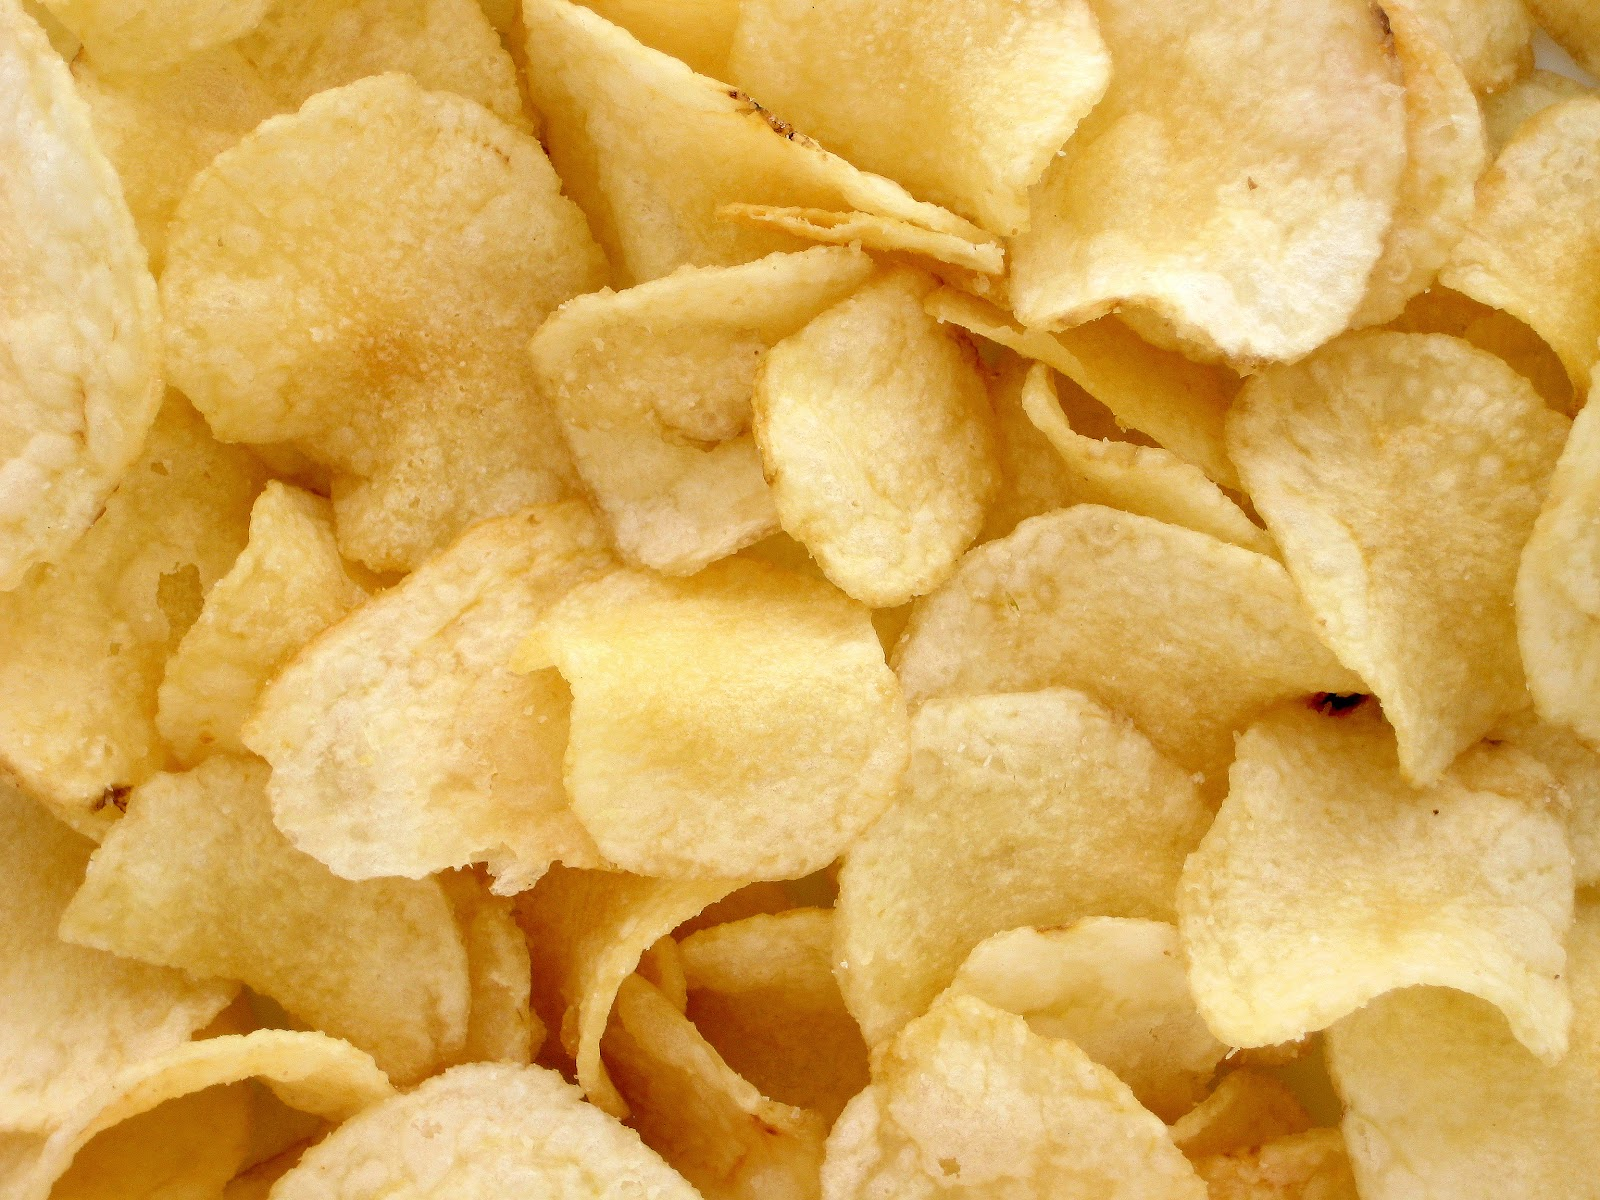 File:Potato-Chips.jpg